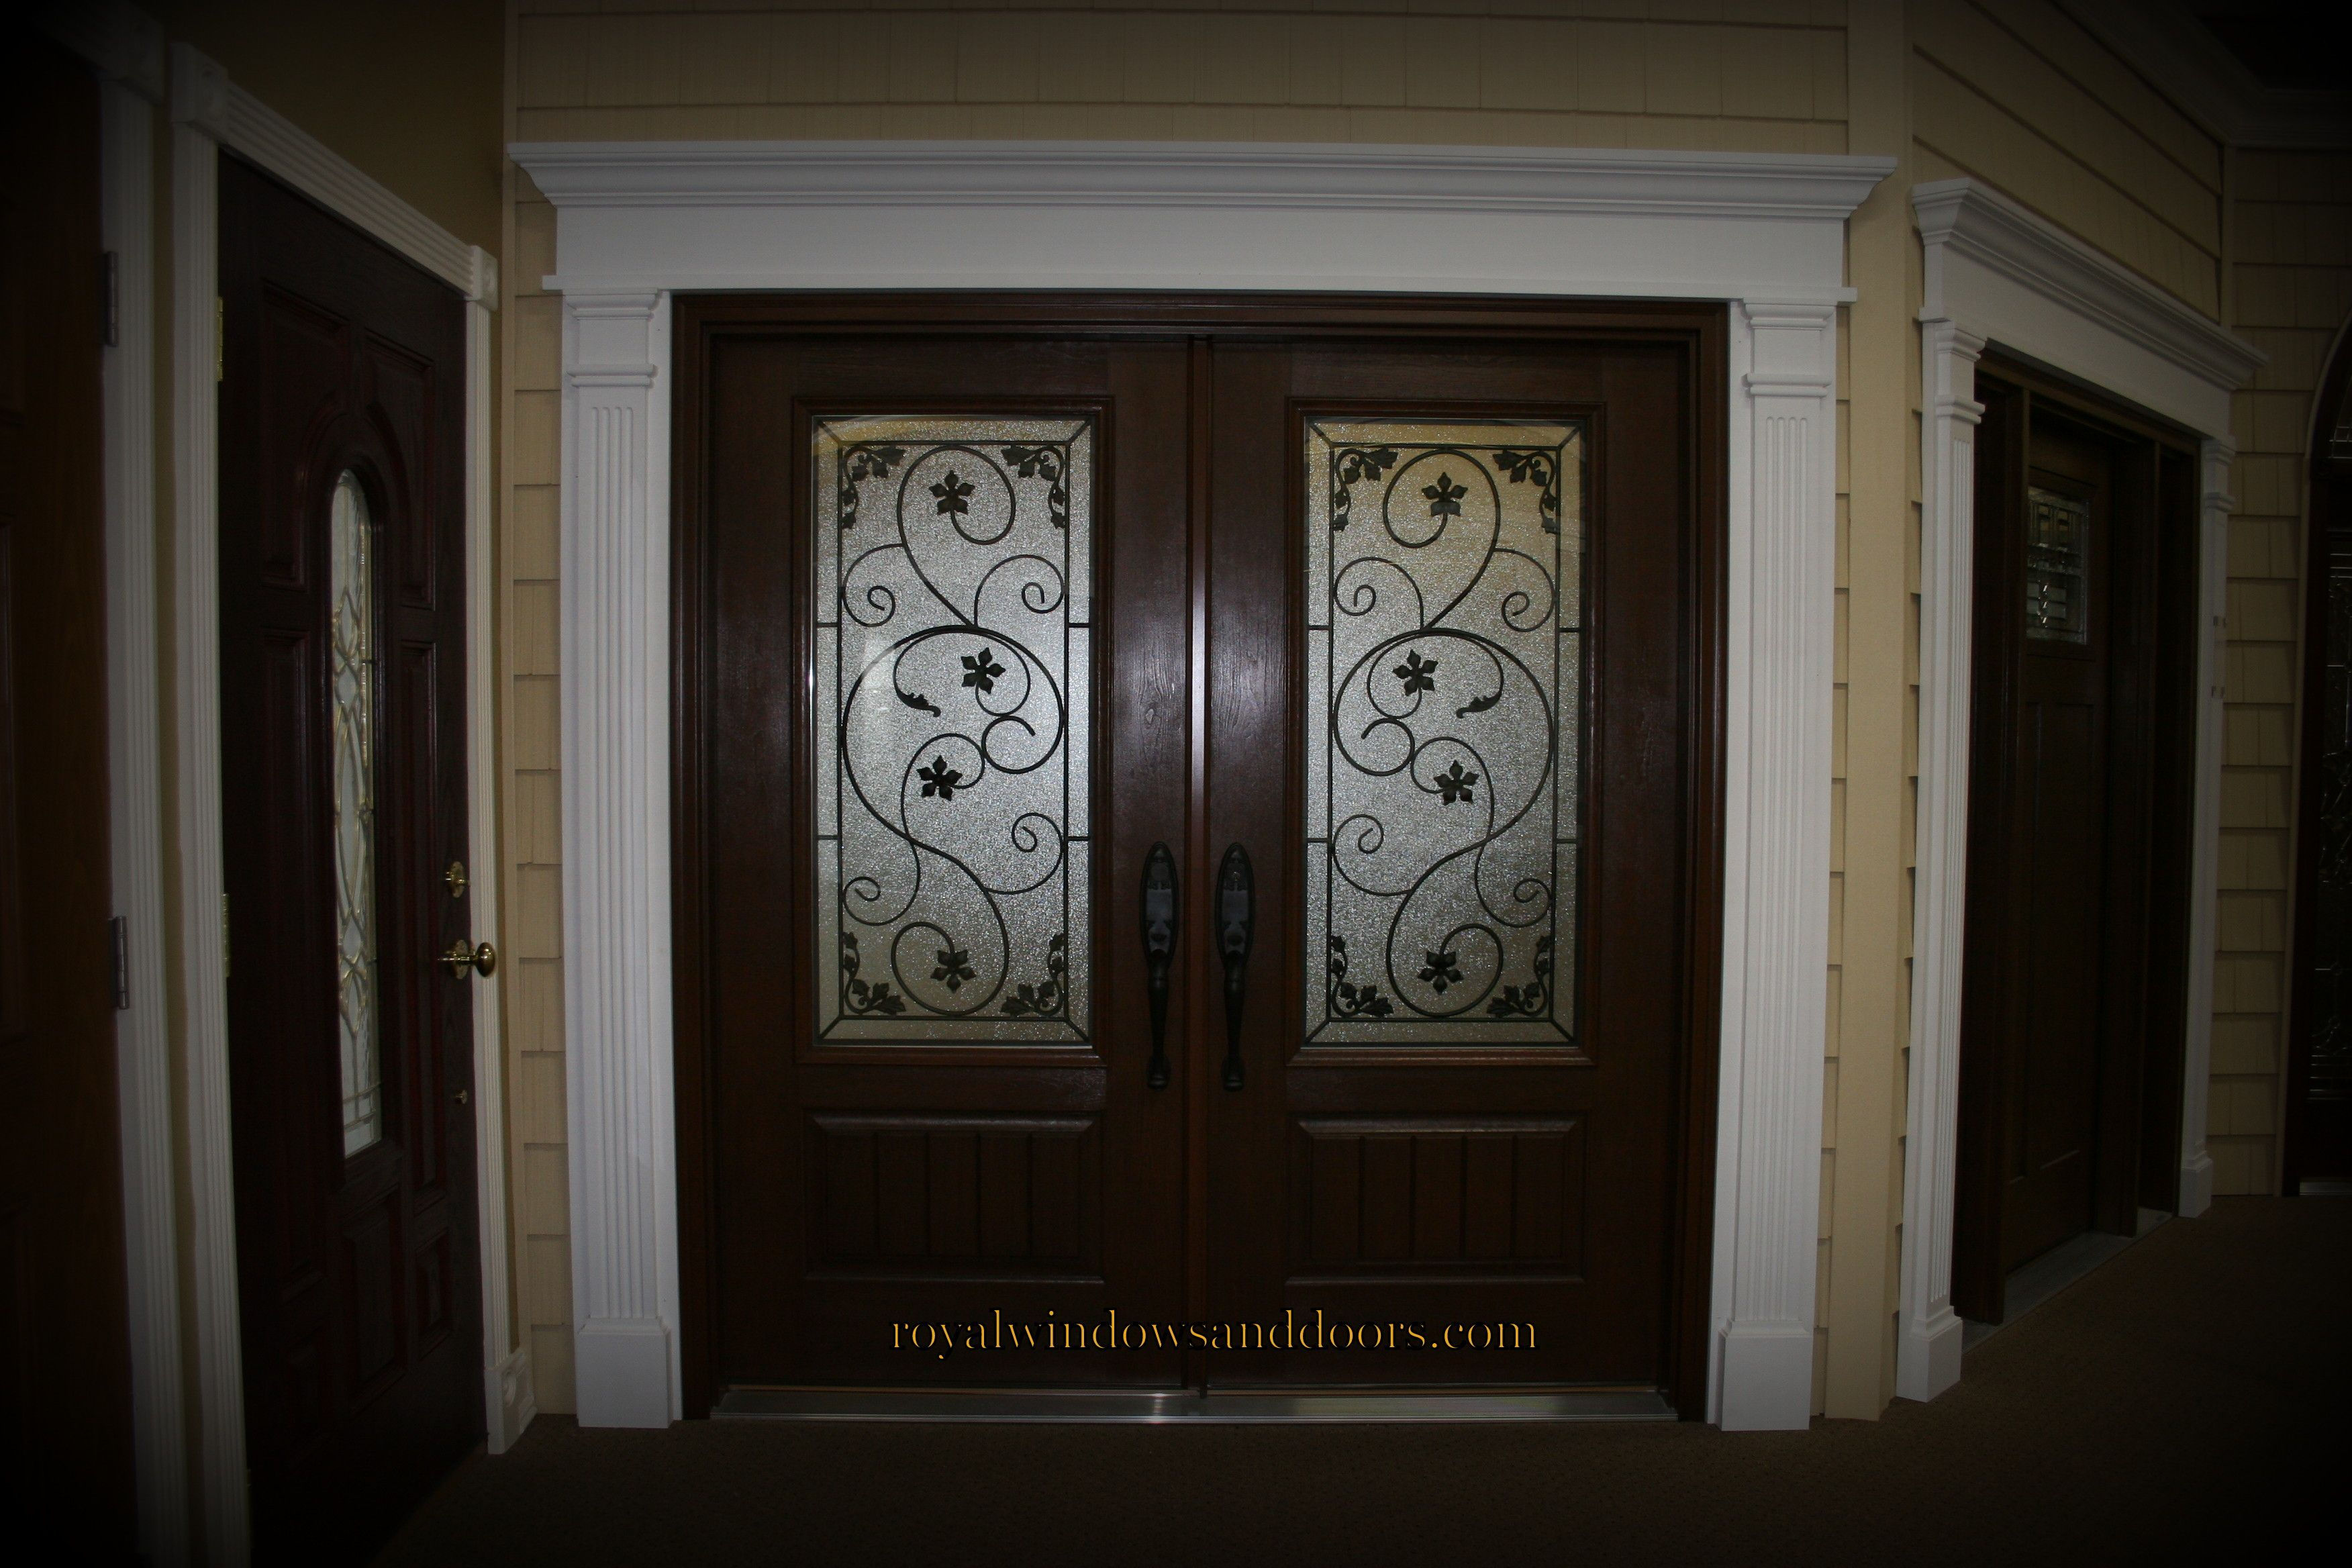 Beau Royal Windows And Doors Will Make Your Dream Of Having A Beautiful Entrance  To Your Home